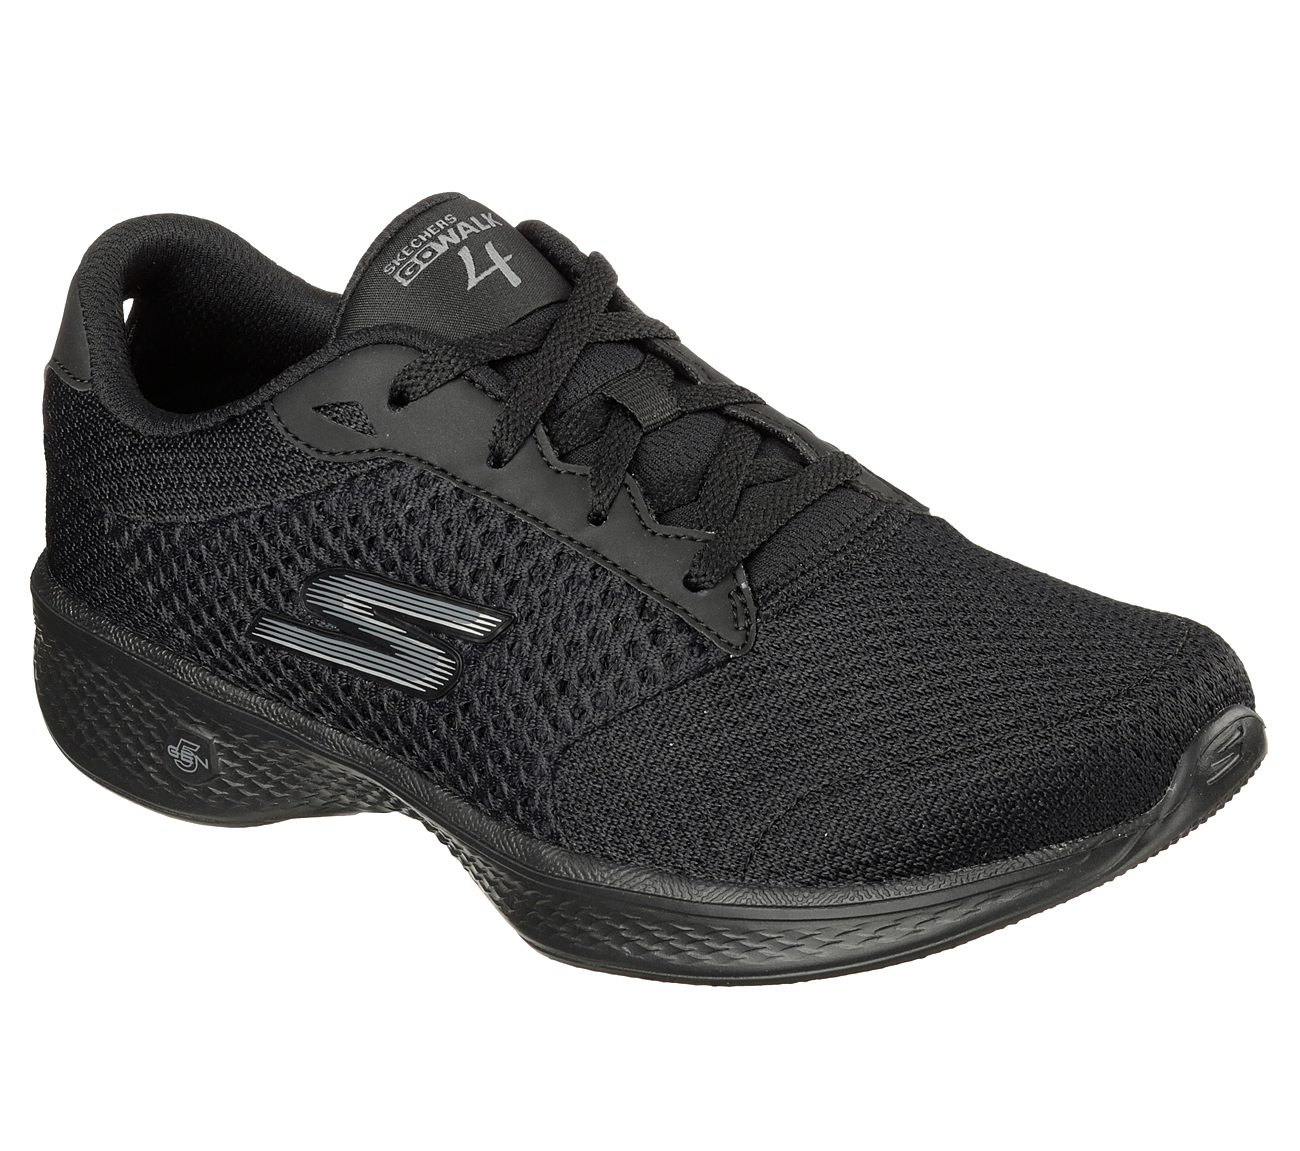 Skechers sneakers skechers gowalk 4 - exceed MDDTBZR